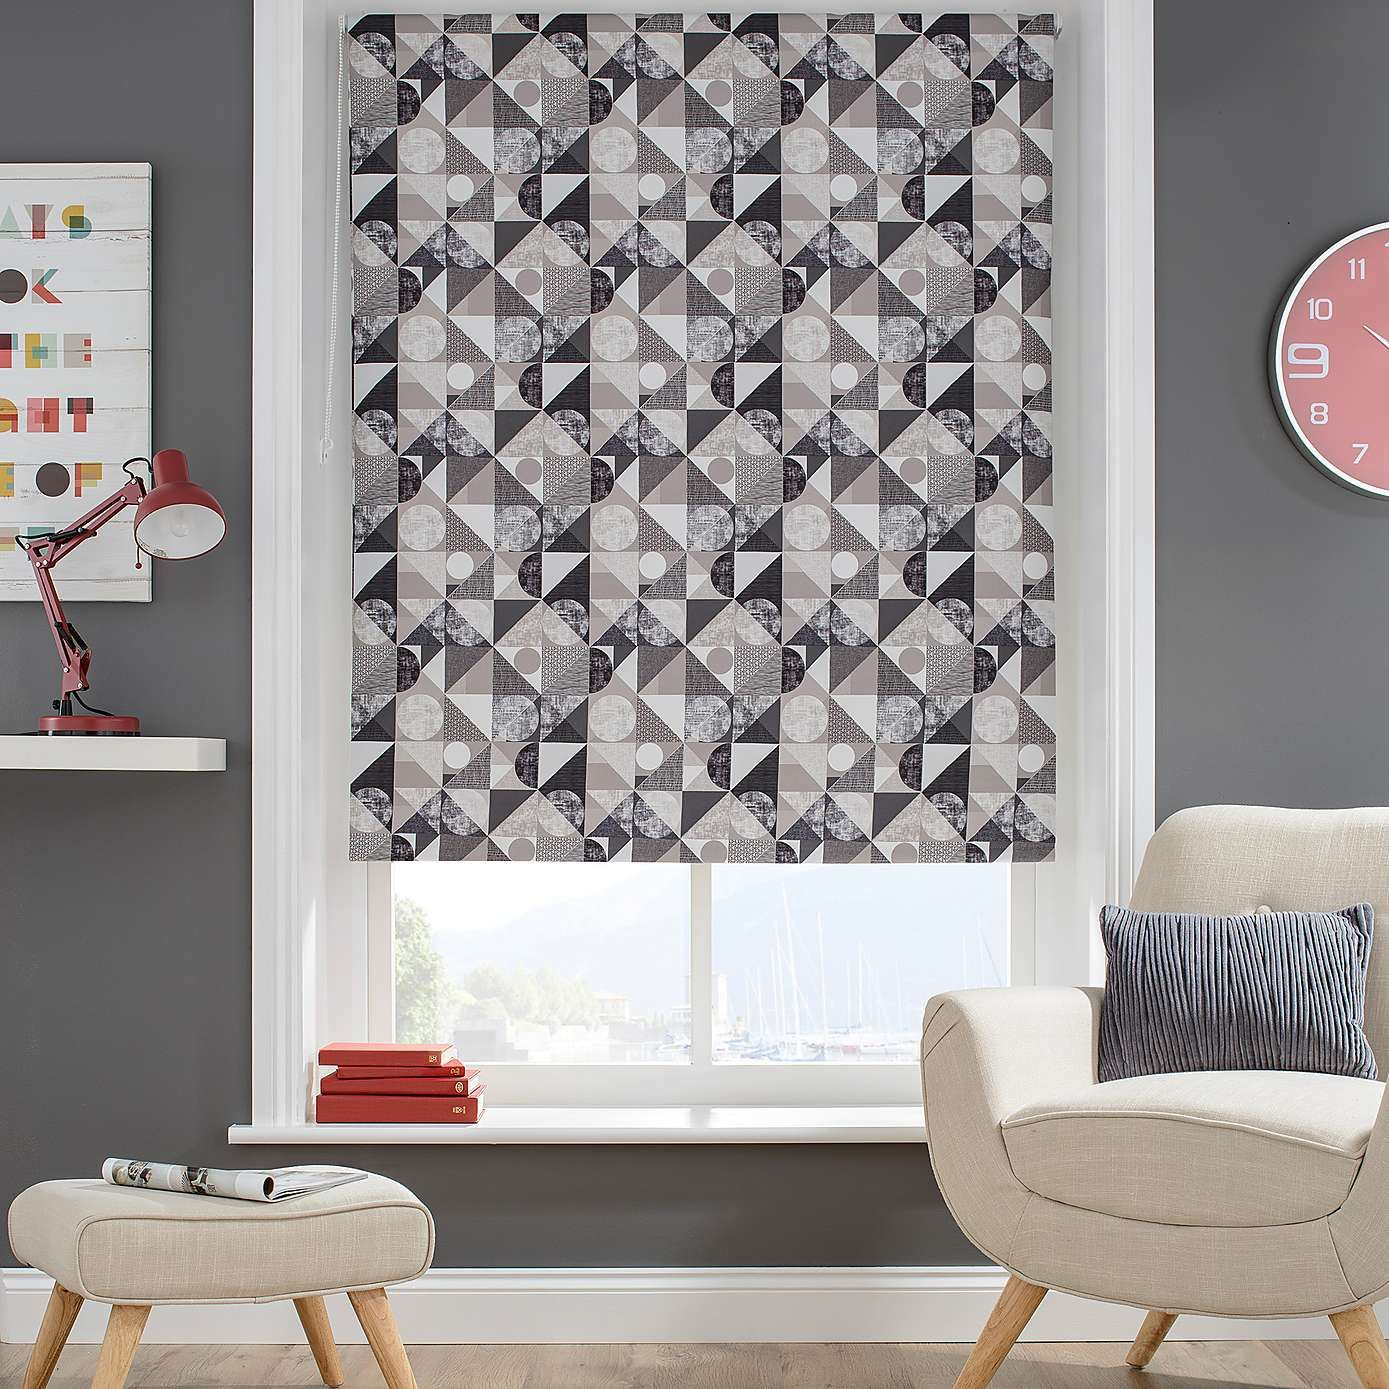 Decorated With A Modern Pattern Made Up Of Grey Circles